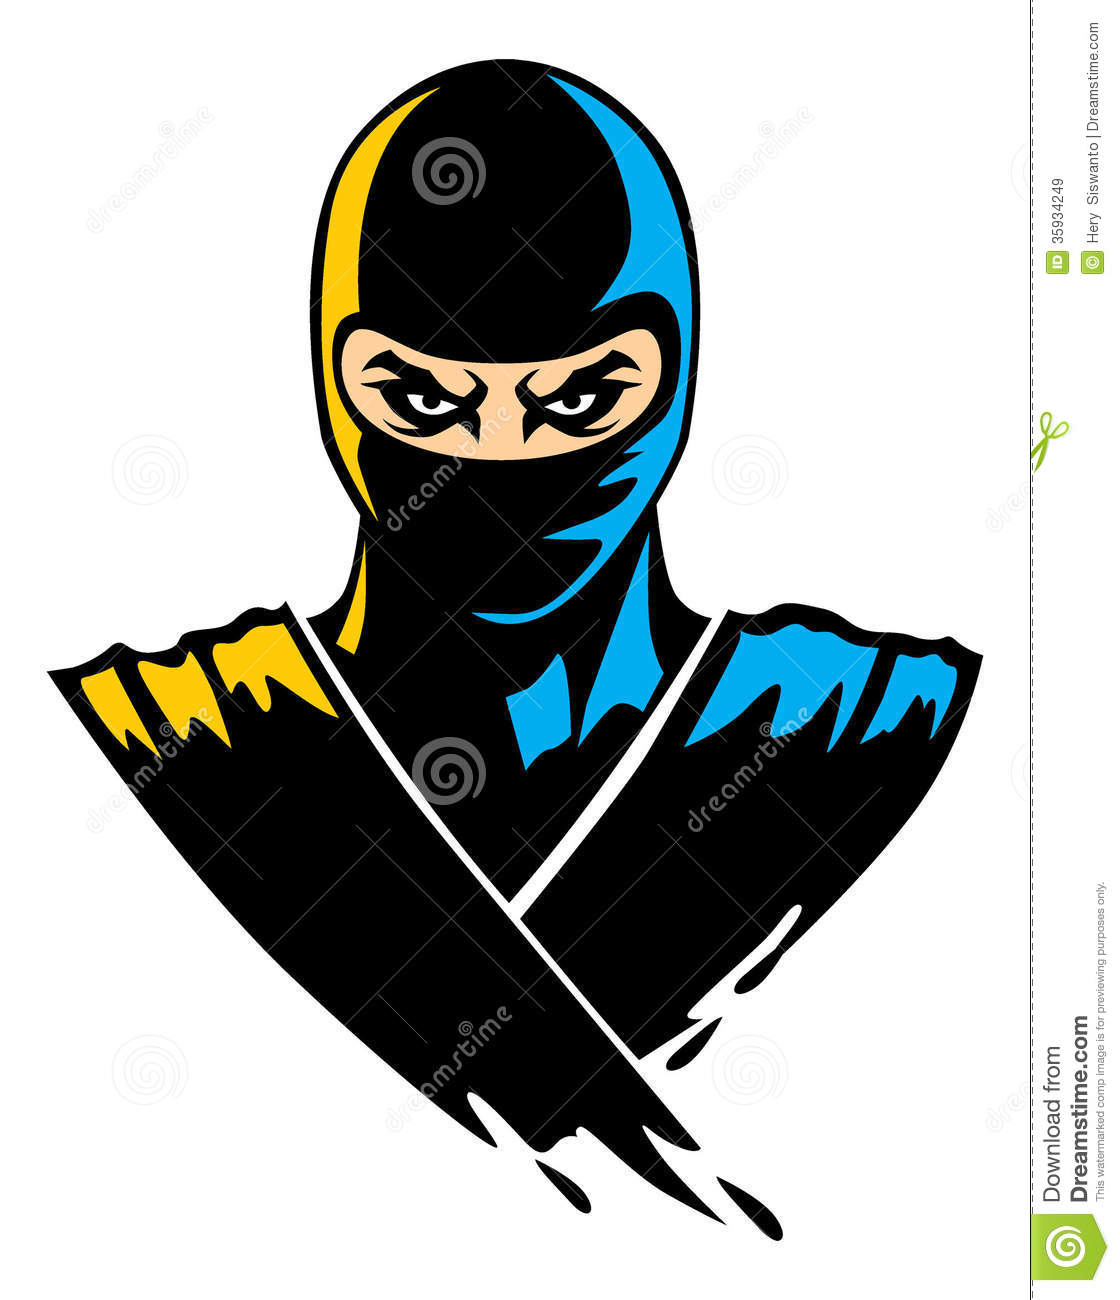 ninja senki dxninja world, ninja gaiden, ninja blade, ninja turtles, ninja gaiden 3, ninja wars, ninja theory, ninja tune, ninja gaiden 2, ninja scroll, ninja kiwi, ninja senki dx, ninja ripper, ninja blade 2, ninja re bang bang, ninja warrior, ninja assassin, ninja legendary warriors, ninja oyunu, ninja gaiden pc